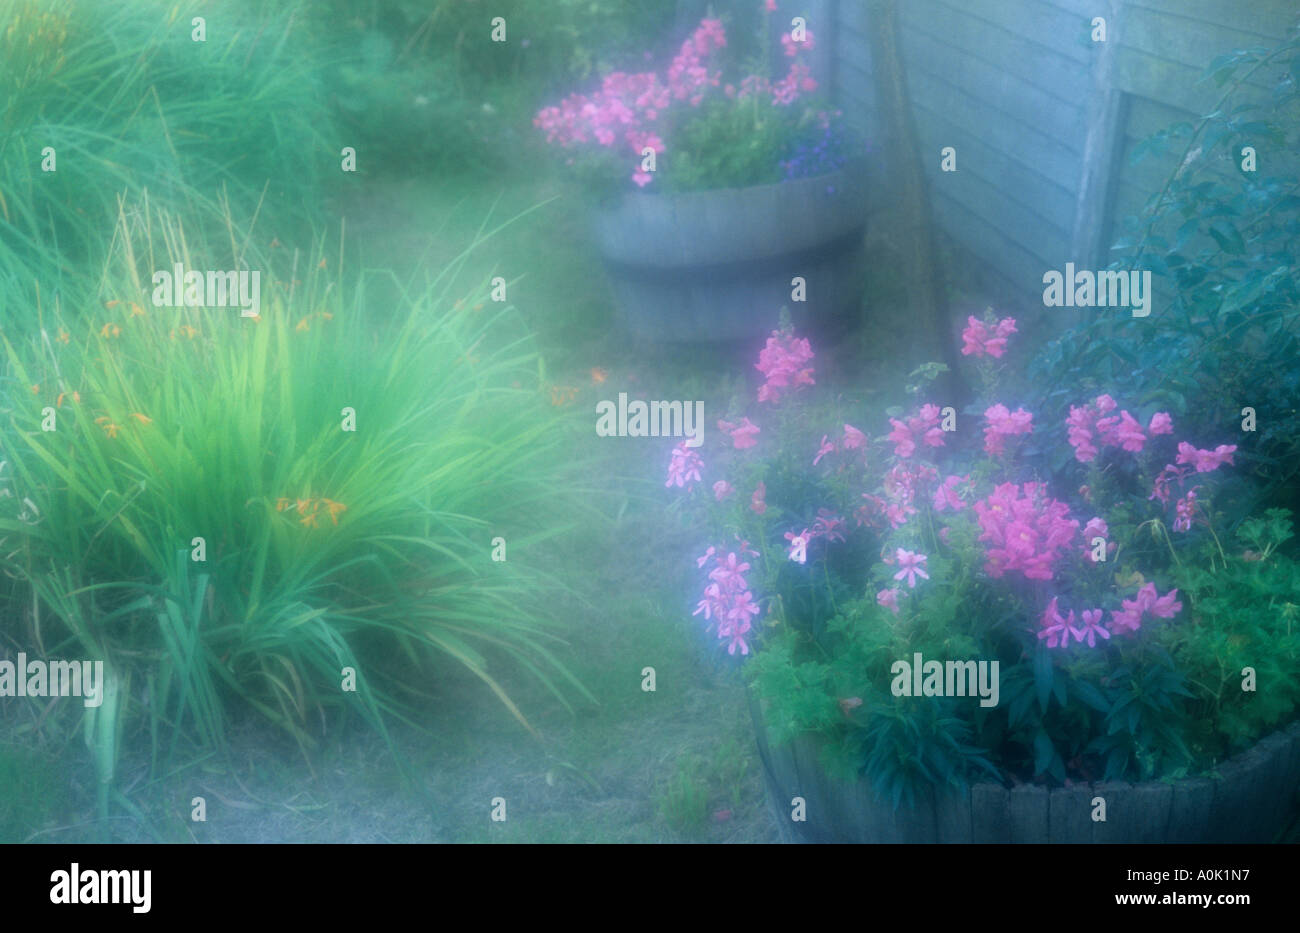 Cozy Garden Corner Stock Photos & Cozy Garden Corner Stock Images ...